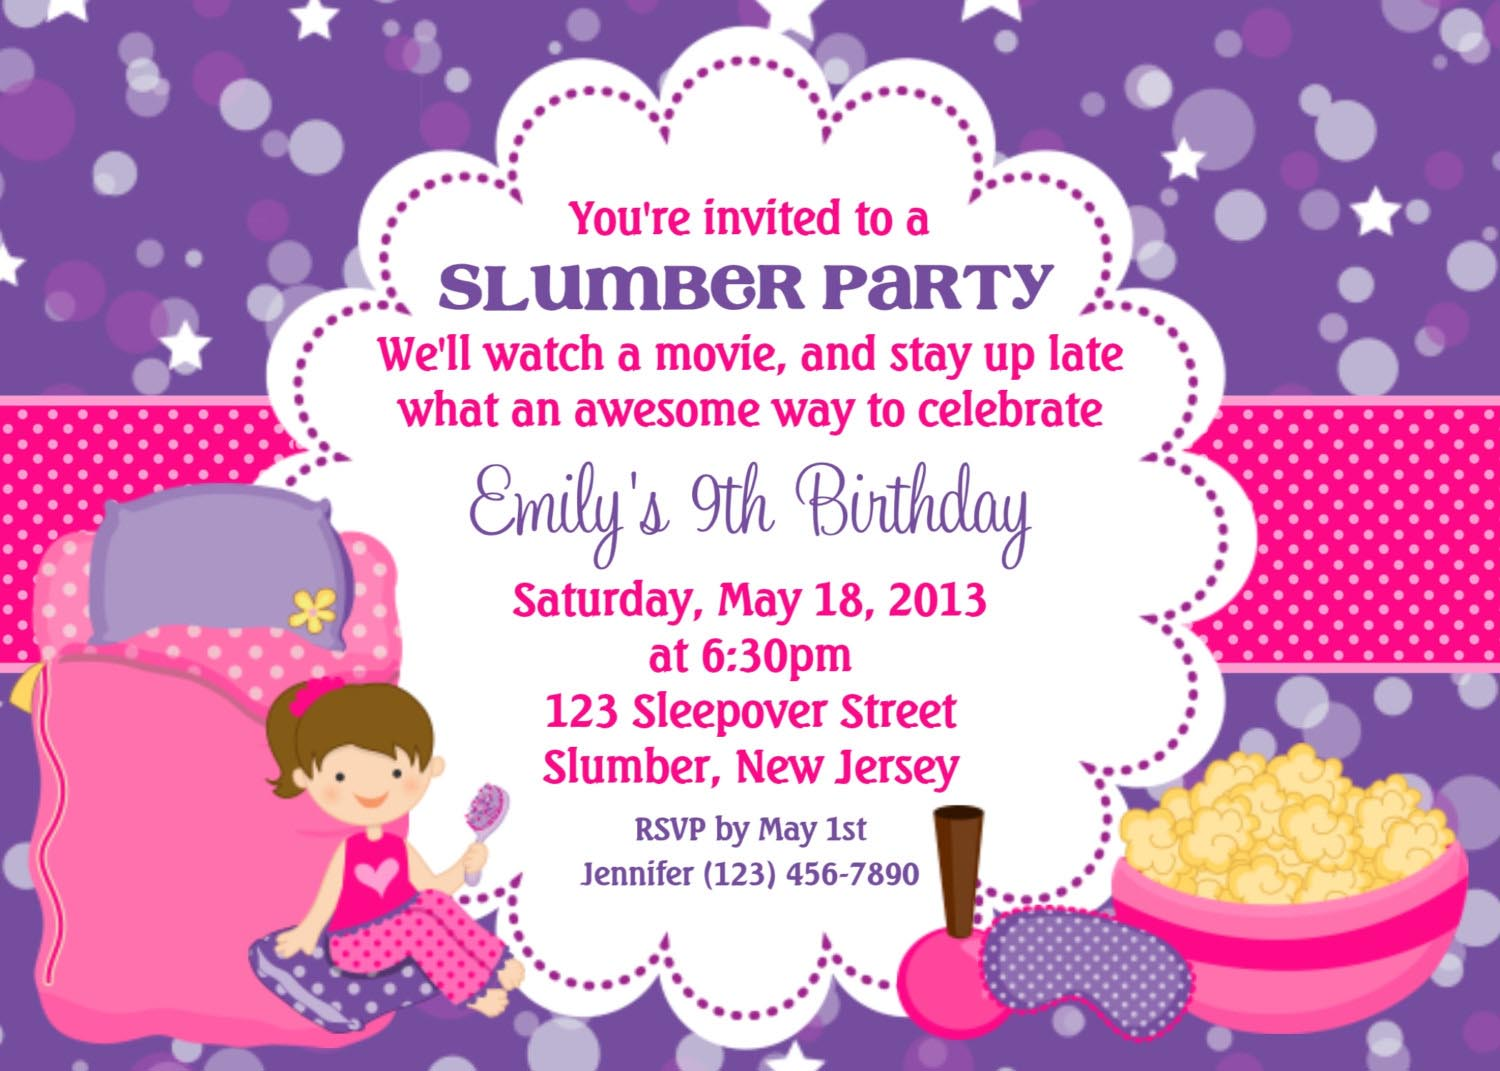 Spa Party Invitations Templates Free – Sleepover Party Invitations Templates